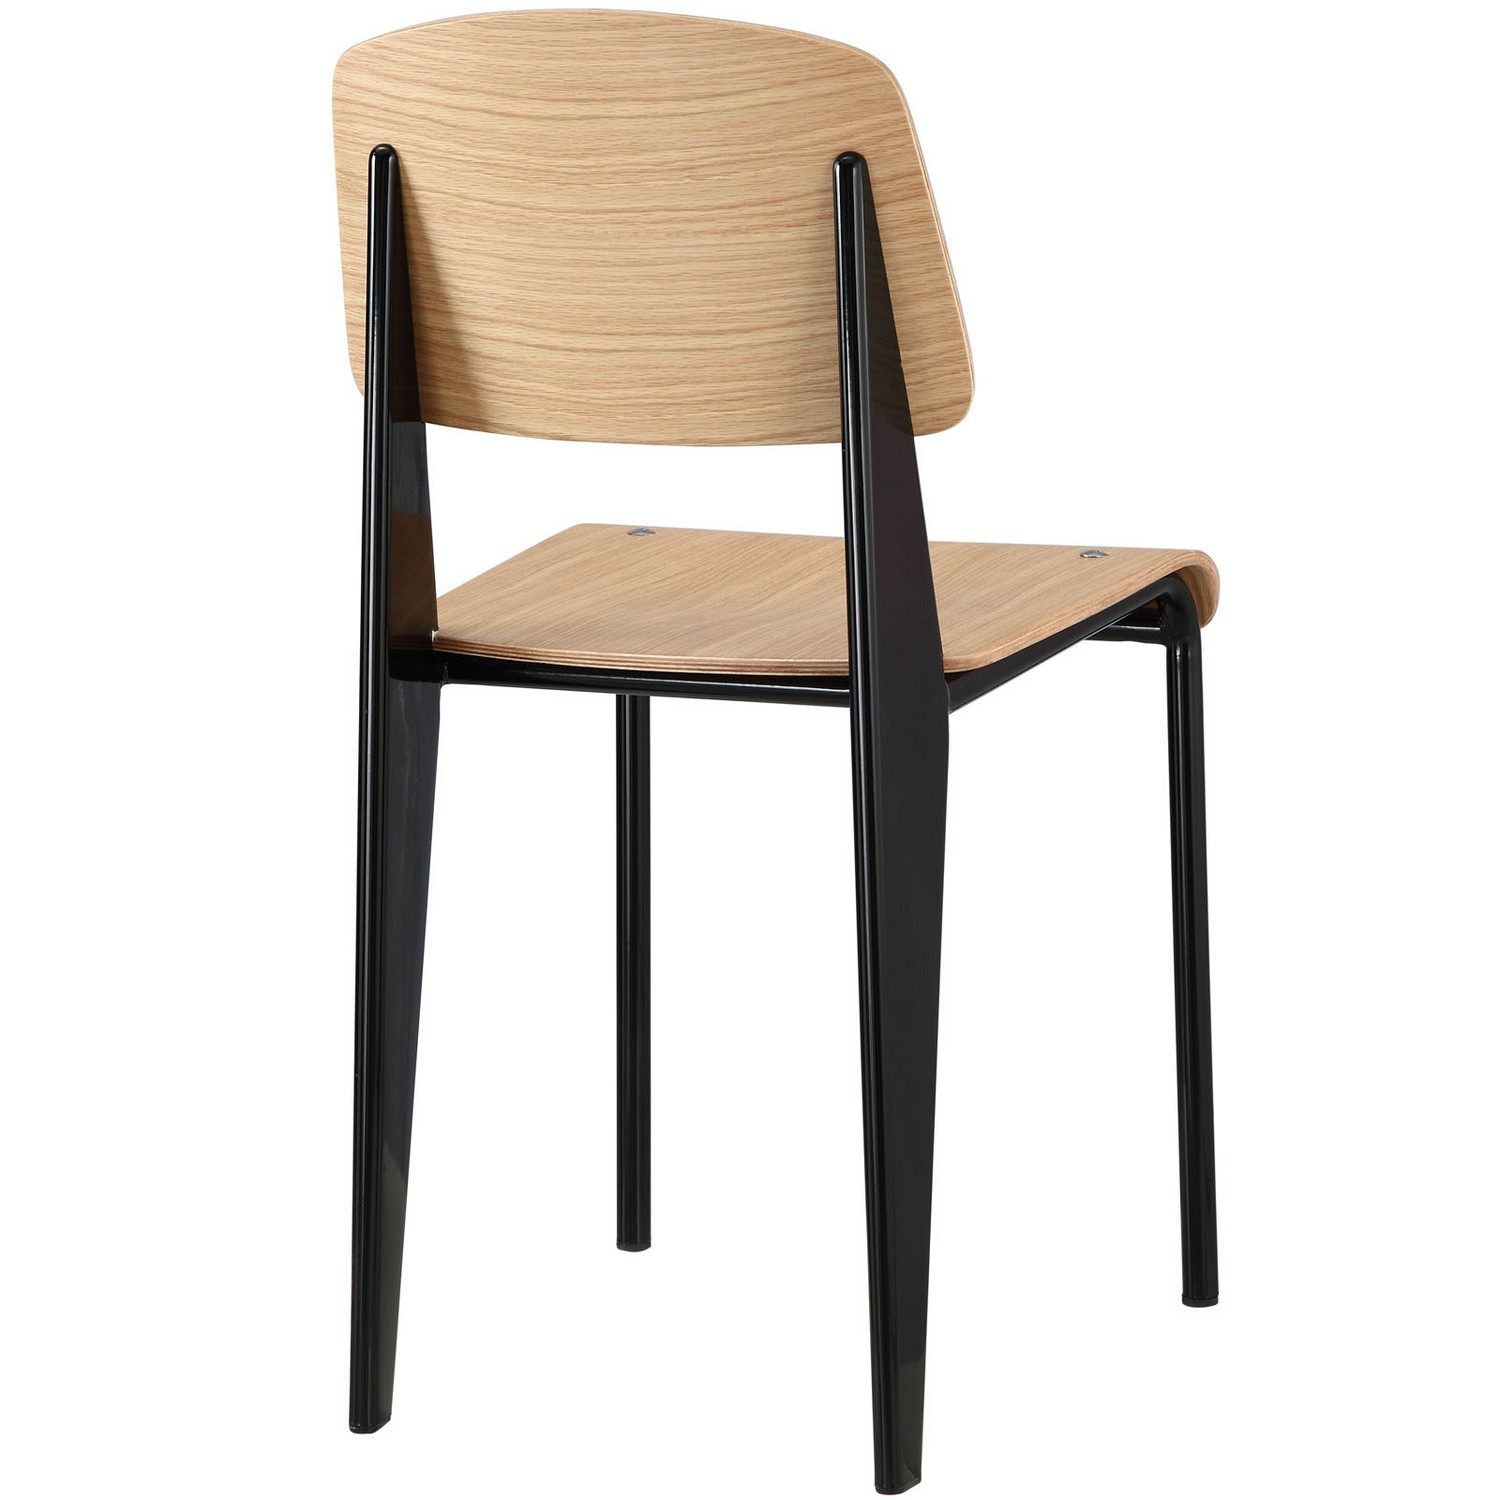 Modway Cabin Dining Side Chair - Natural Black